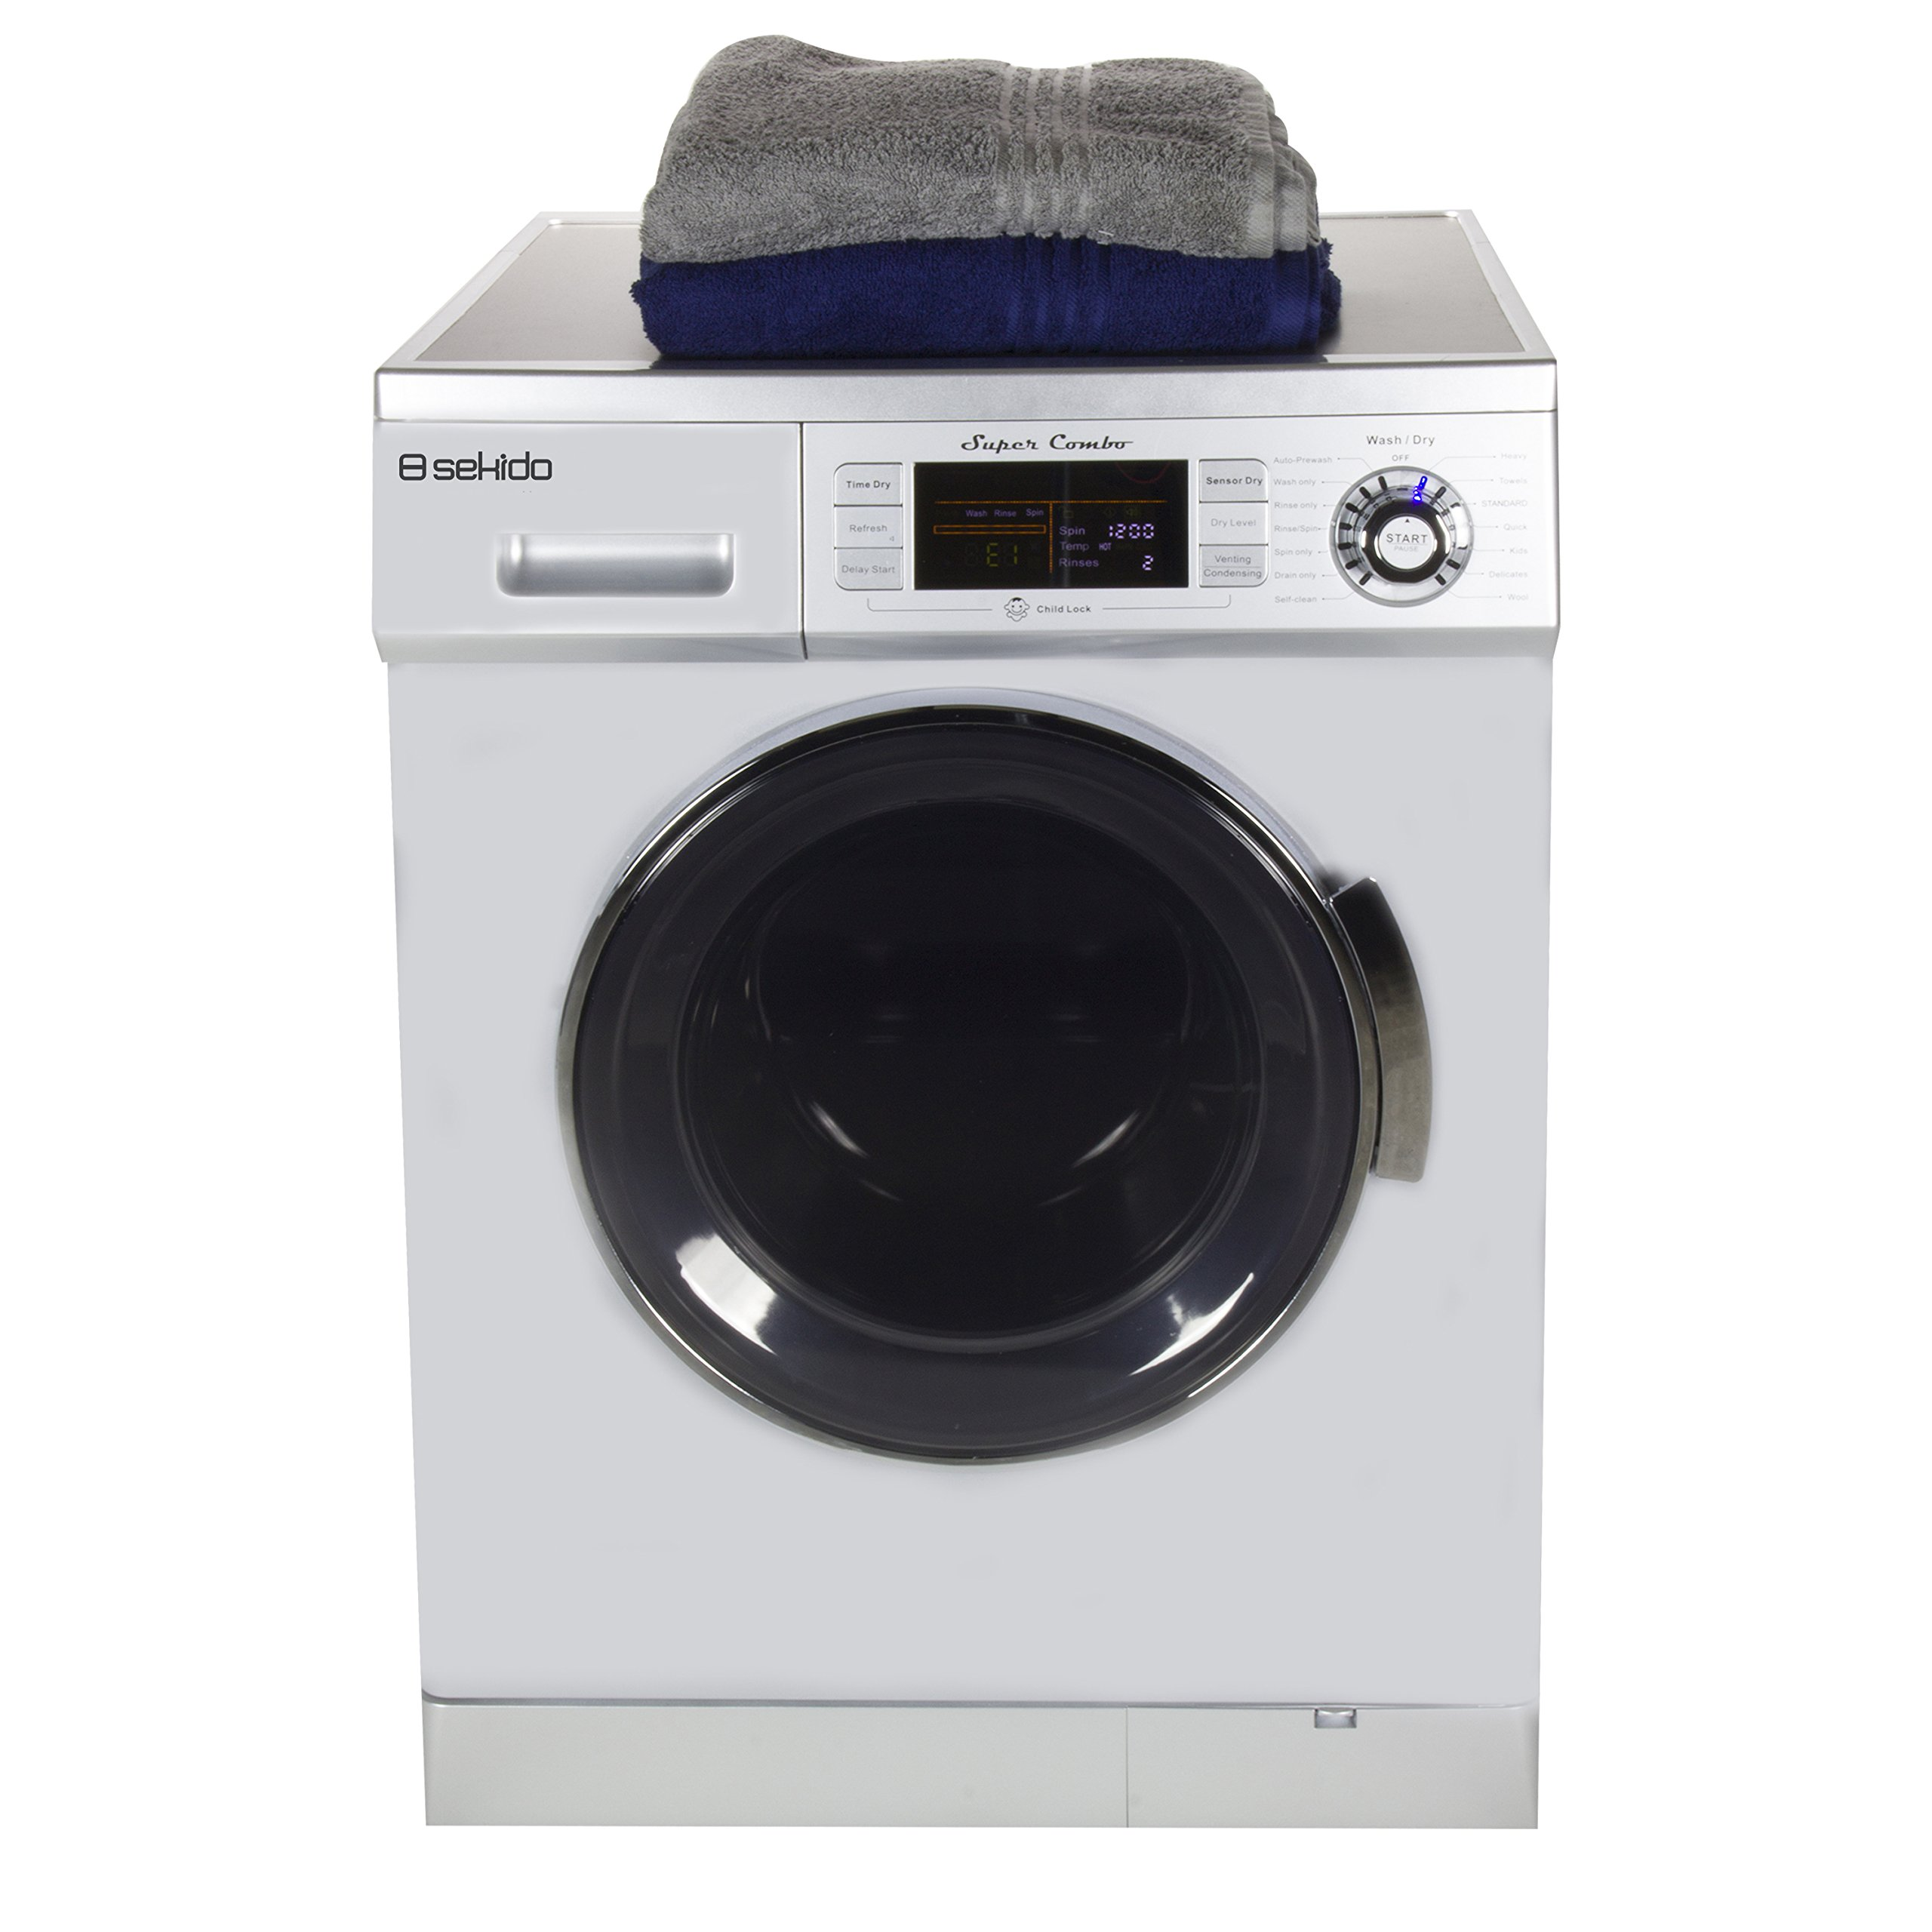 All in one Front Load 1.6 Cu.ft. New Compact Combo Washer Dryer SK 4400 CV Silver with Optional Venting/ Condensing Drying with Automatic Water Level and Sensor Dry